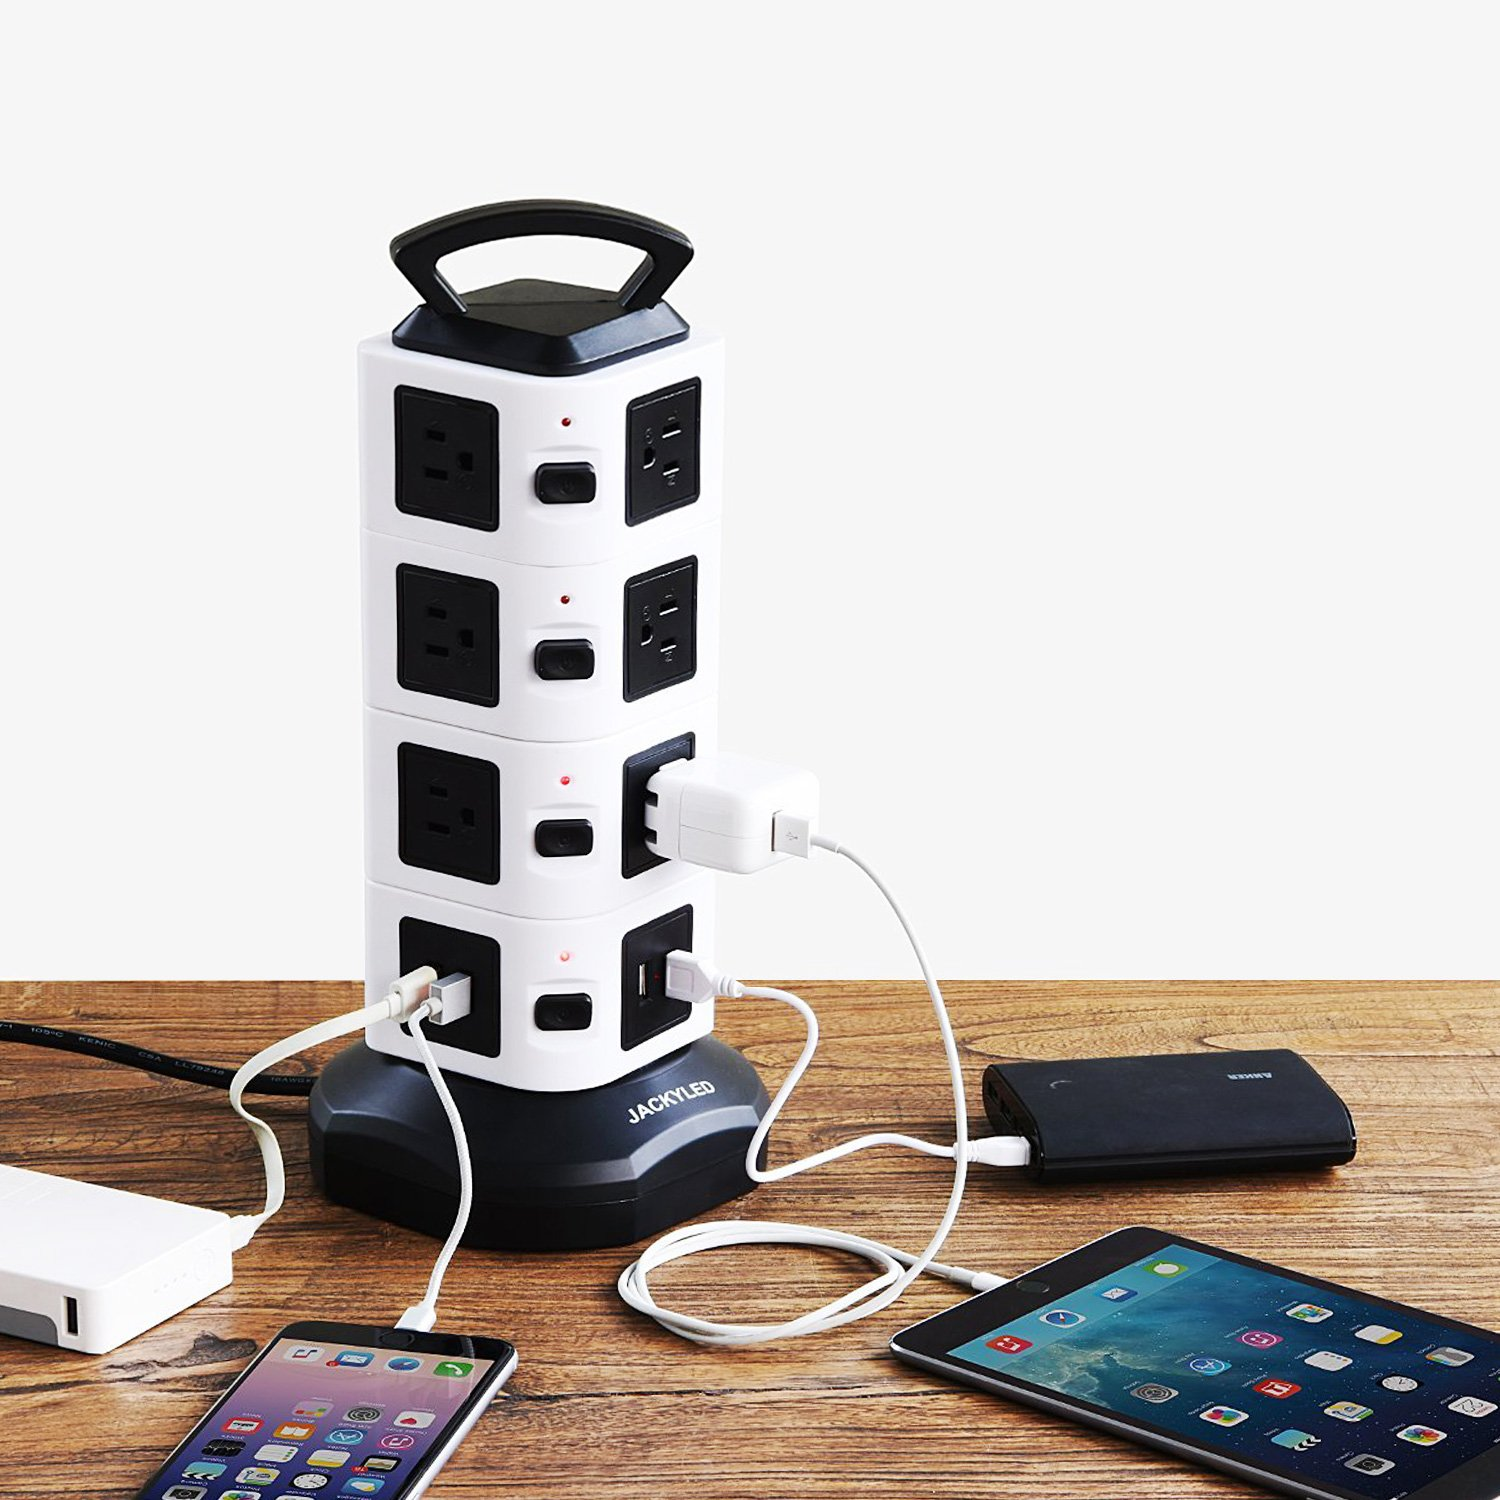 JACKYLED Power Strip - 14 Outlet Plugs with 4 USB Slot 6.5ft Cord Wire Extension 3000W Surge Protector Universal Socket Charging Station for PC Laptops Mobile Devices by JACKYLED (Image #8)